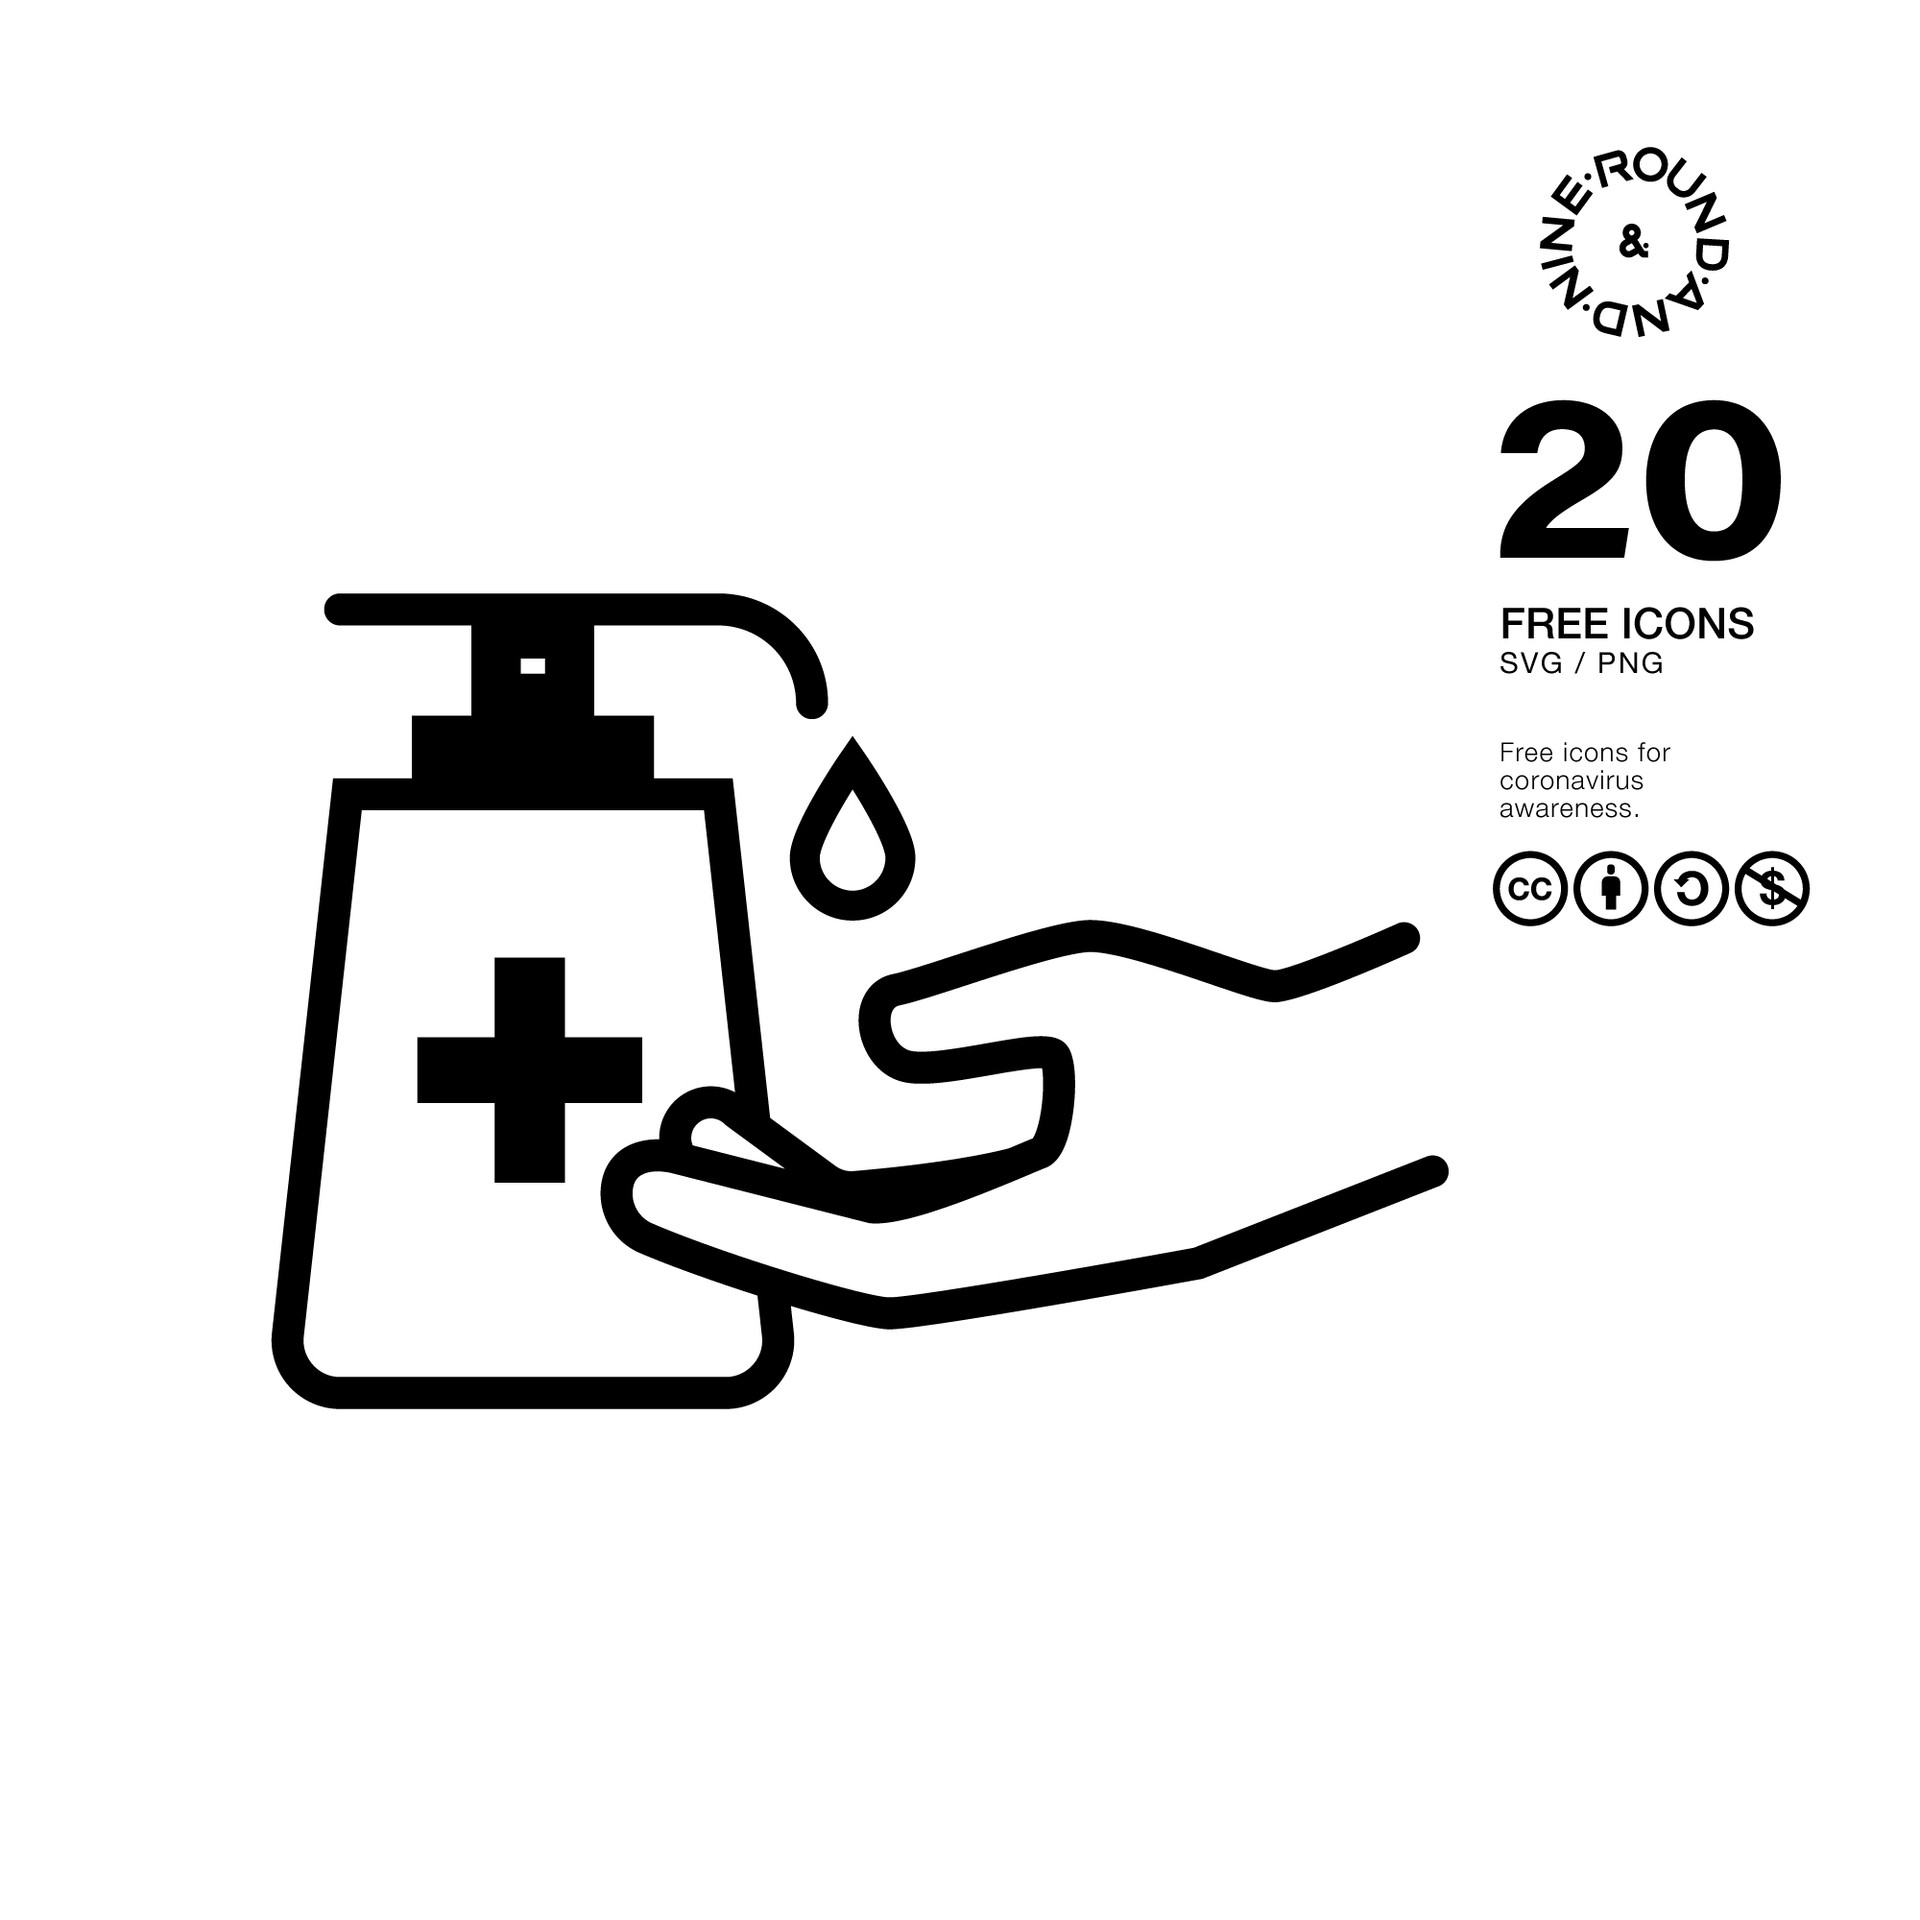 20 Free Icons for Covid-19